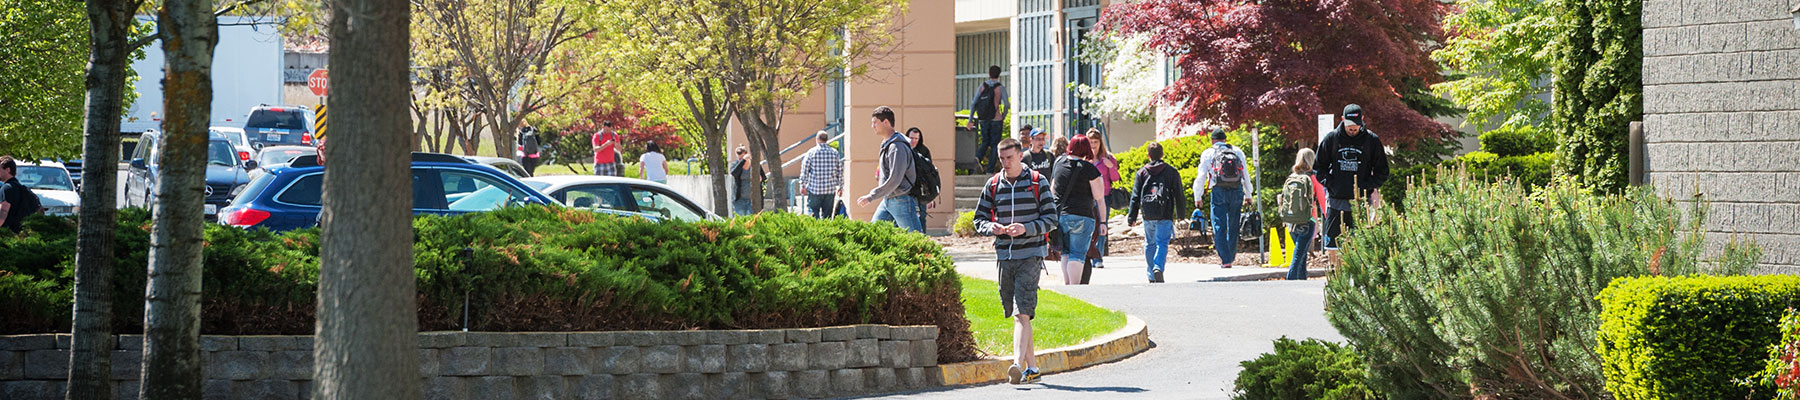 Students walking around outdoors on the SCC campus